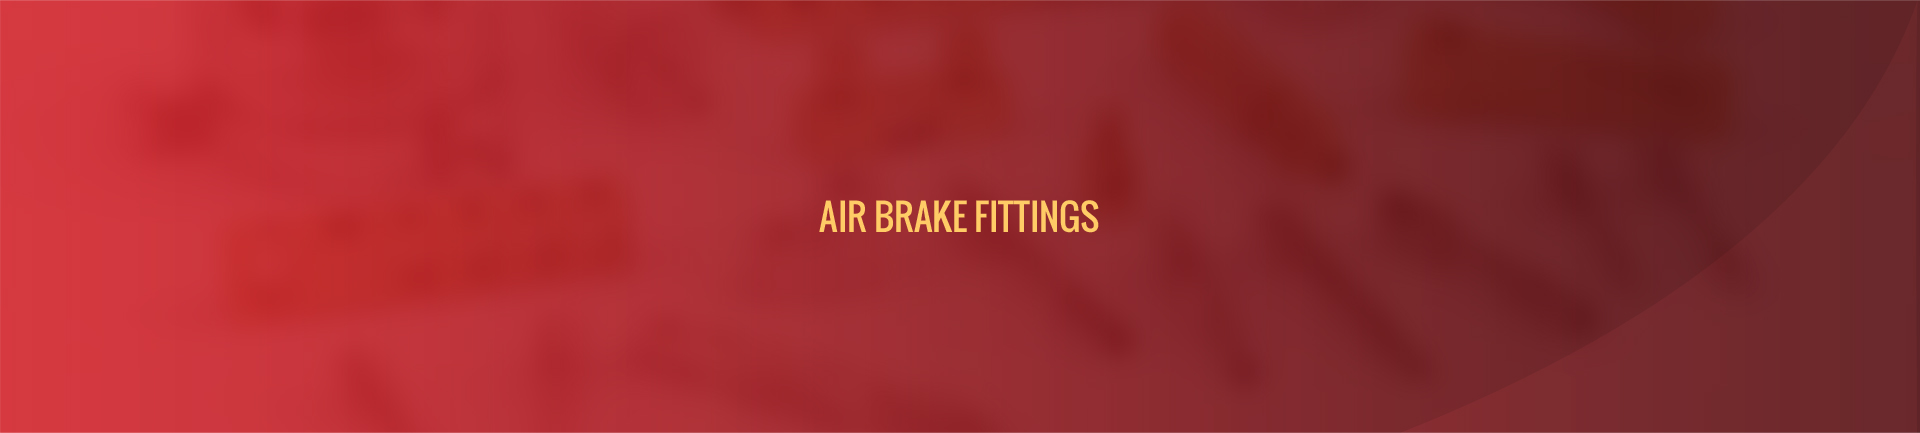 air-brake-fittings-banner